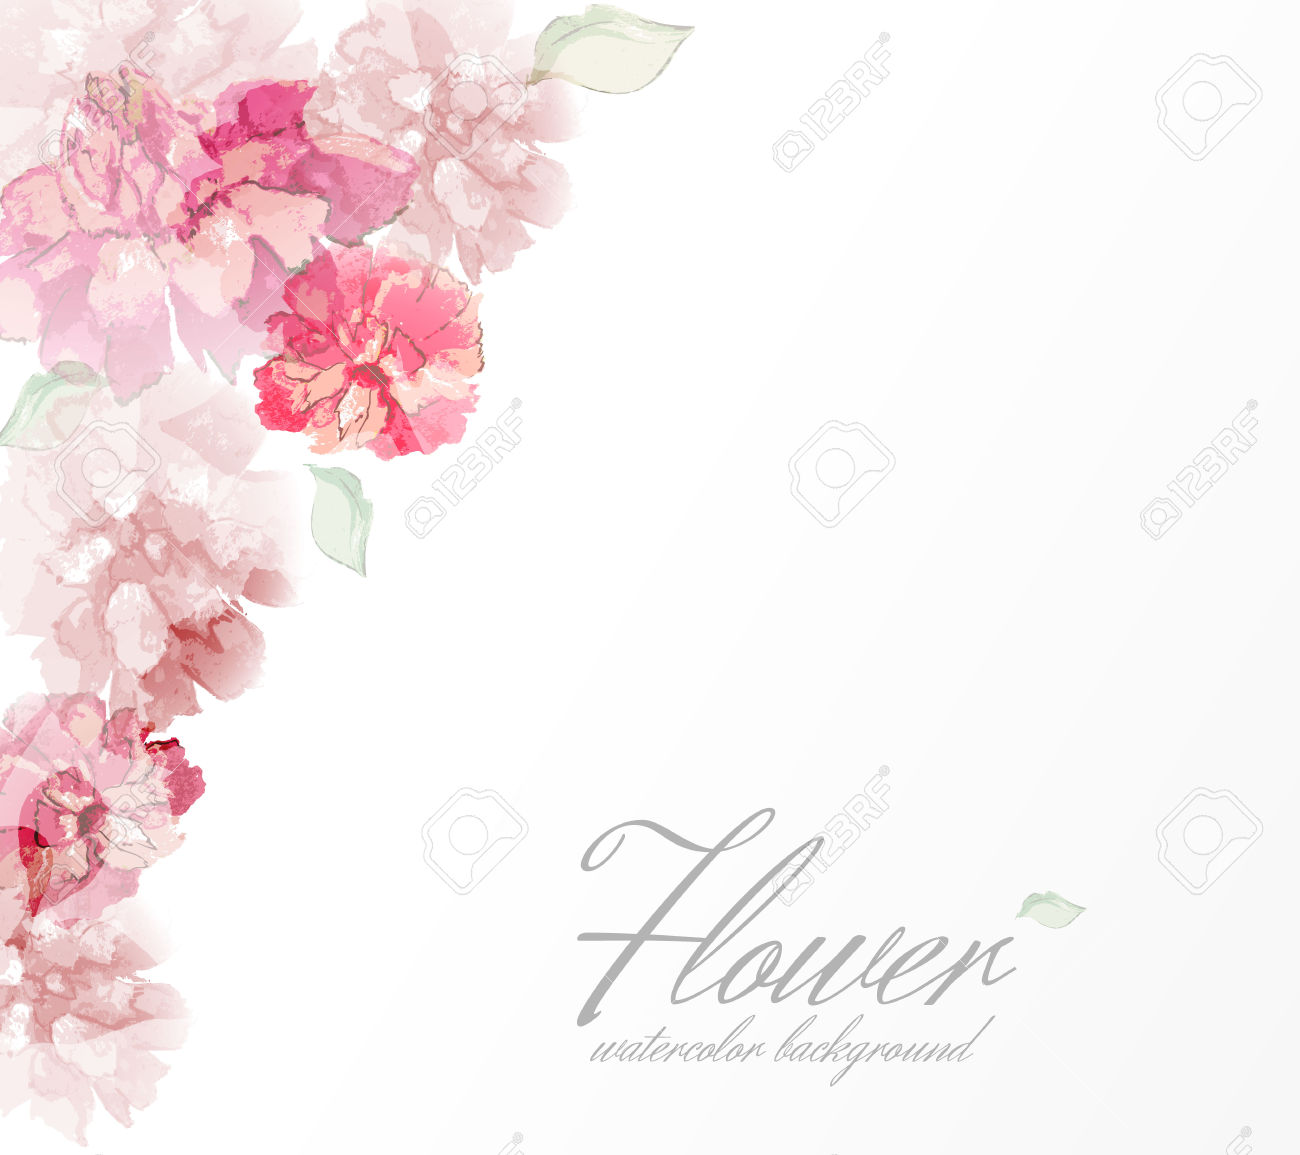 Watercolor flower clipart no background image library library Watercolor white flowers clipart transparent background free ... image library library